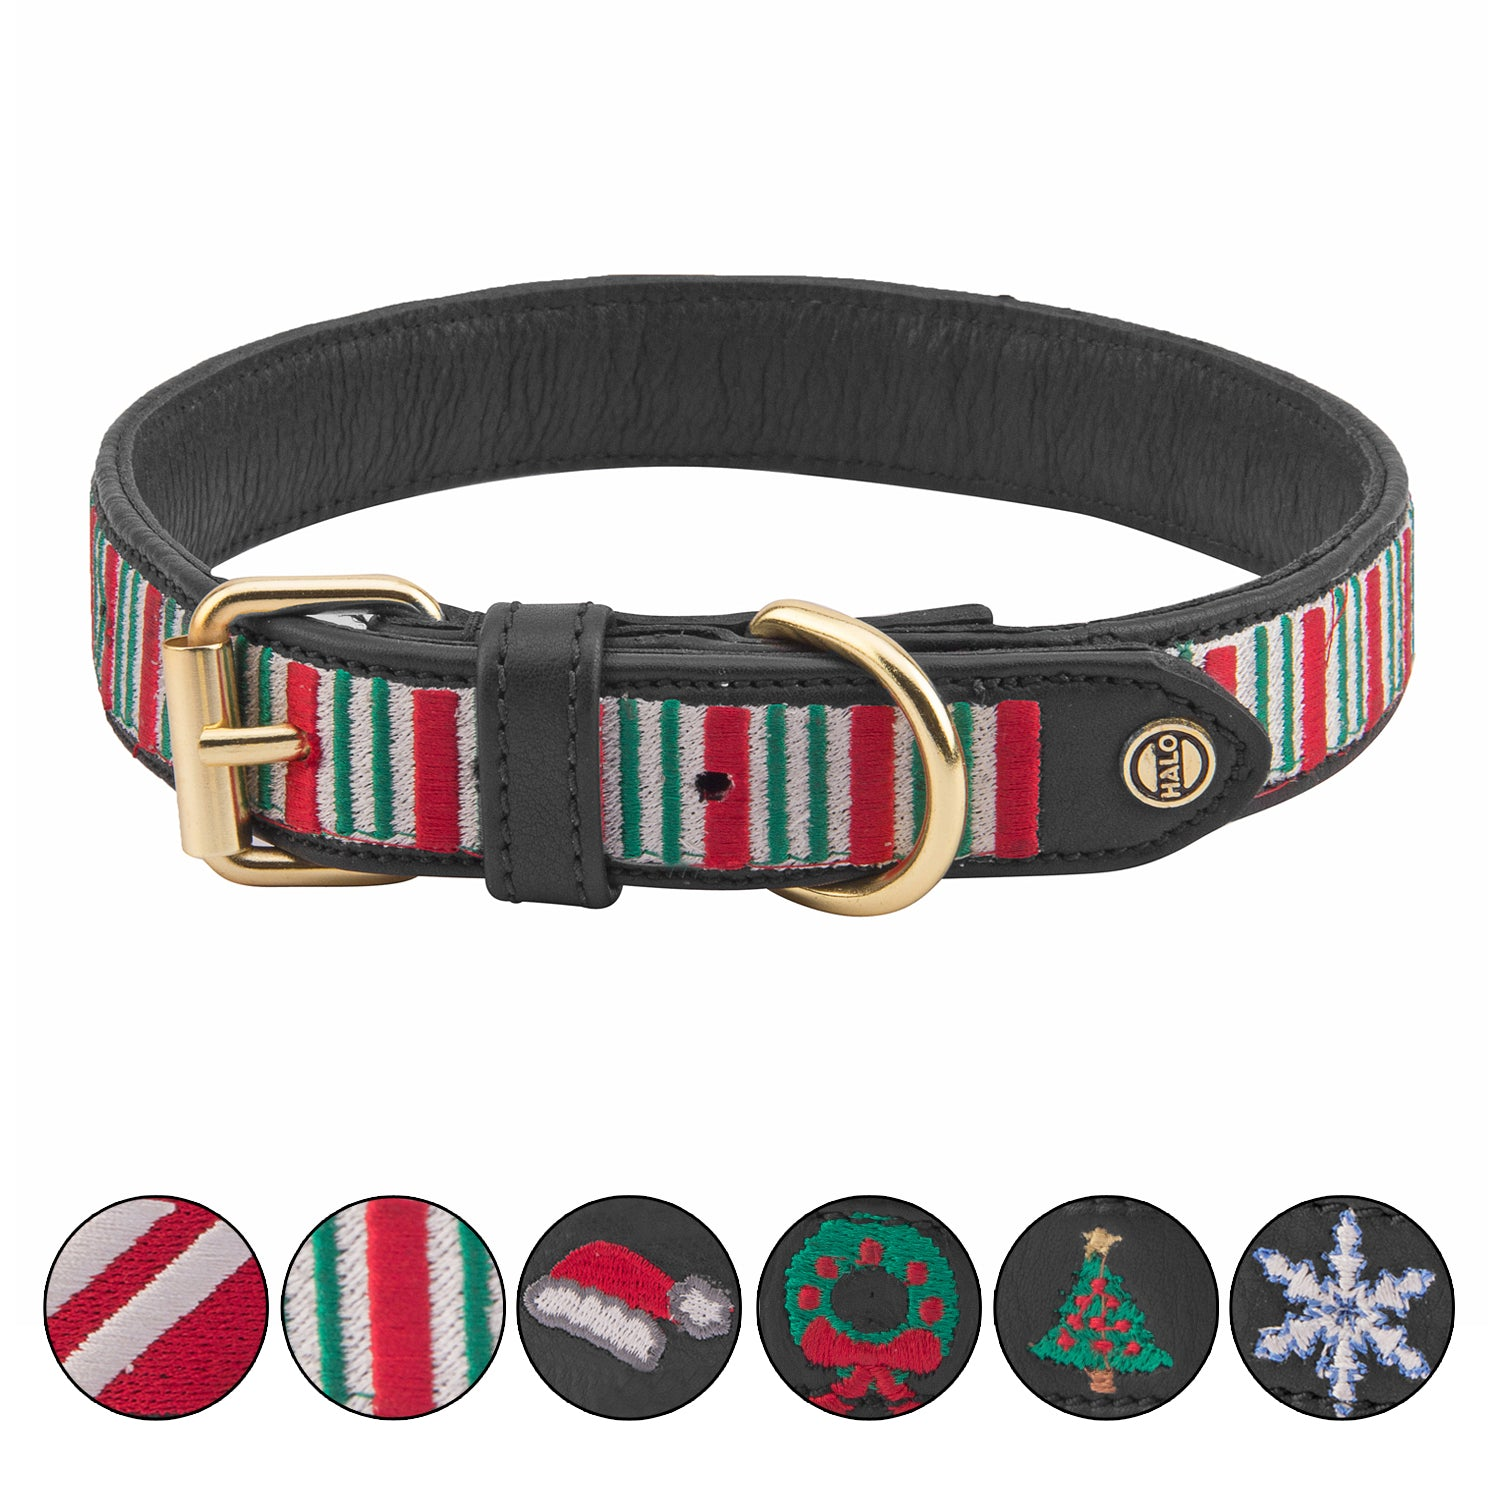 Halo Dog Collar - Leather with Christmas Stripes Embroidery_2053